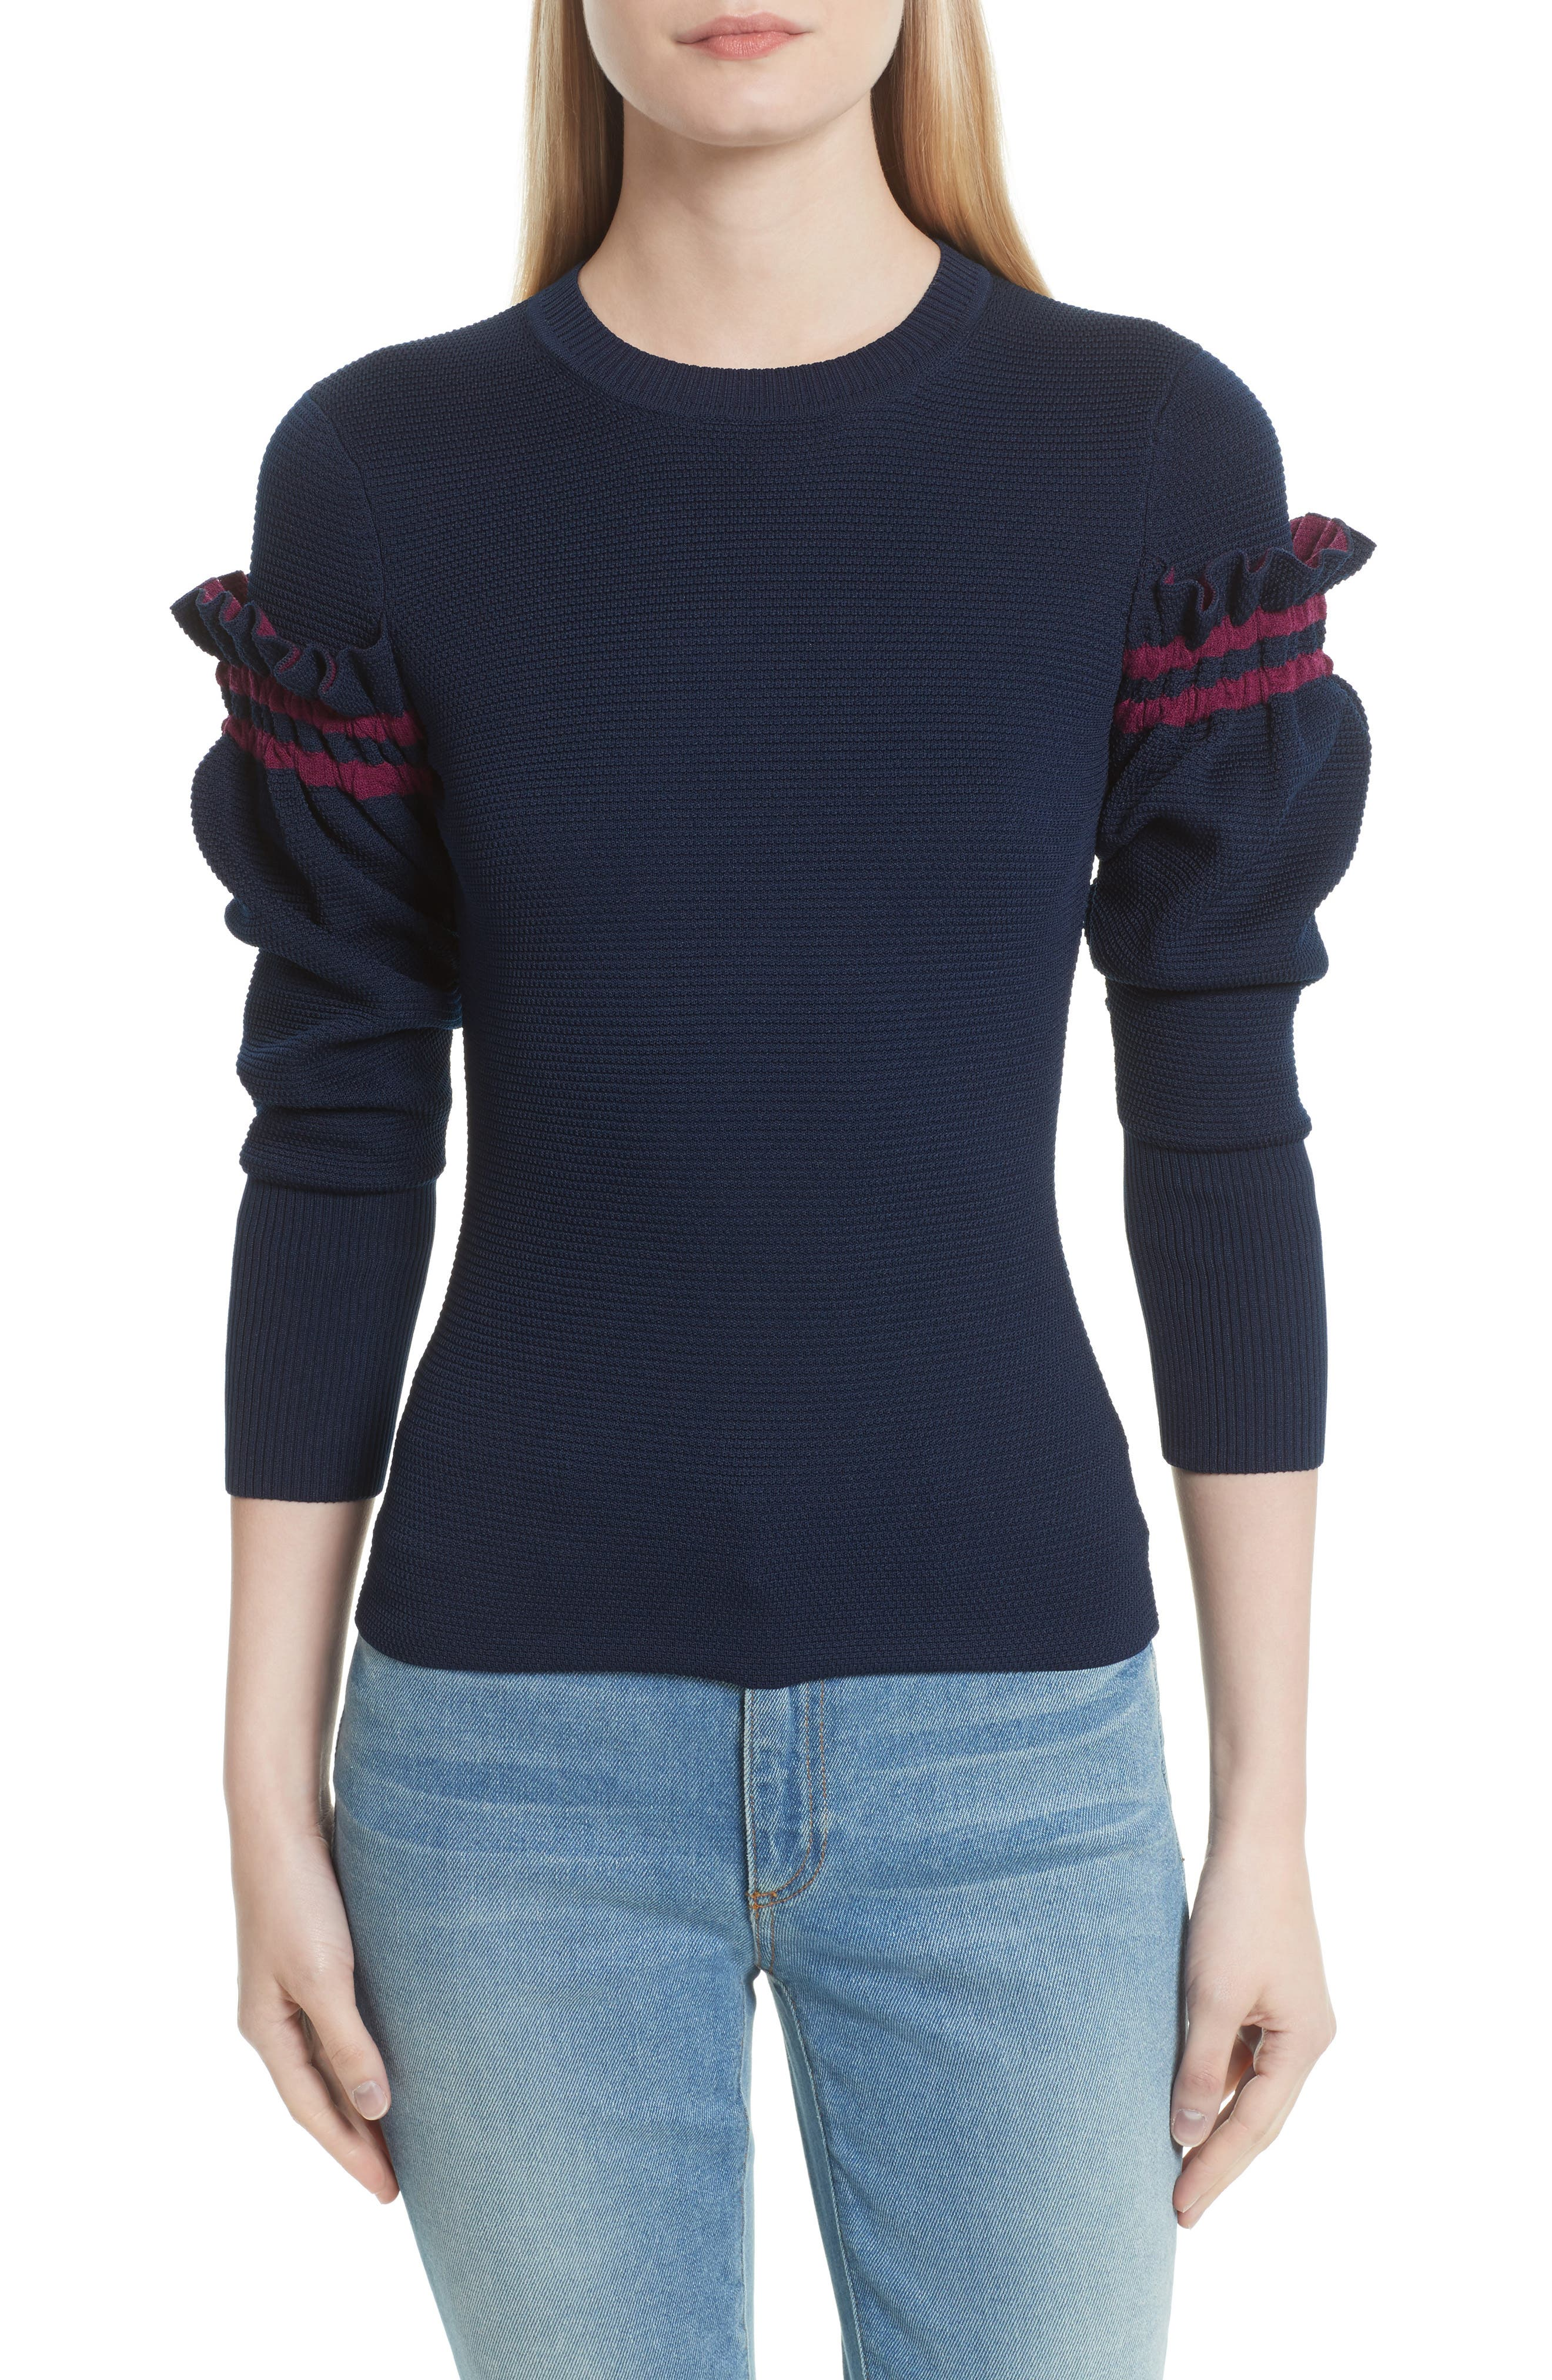 3.1 Phillip Lim Ruffle Sleeve Sweater